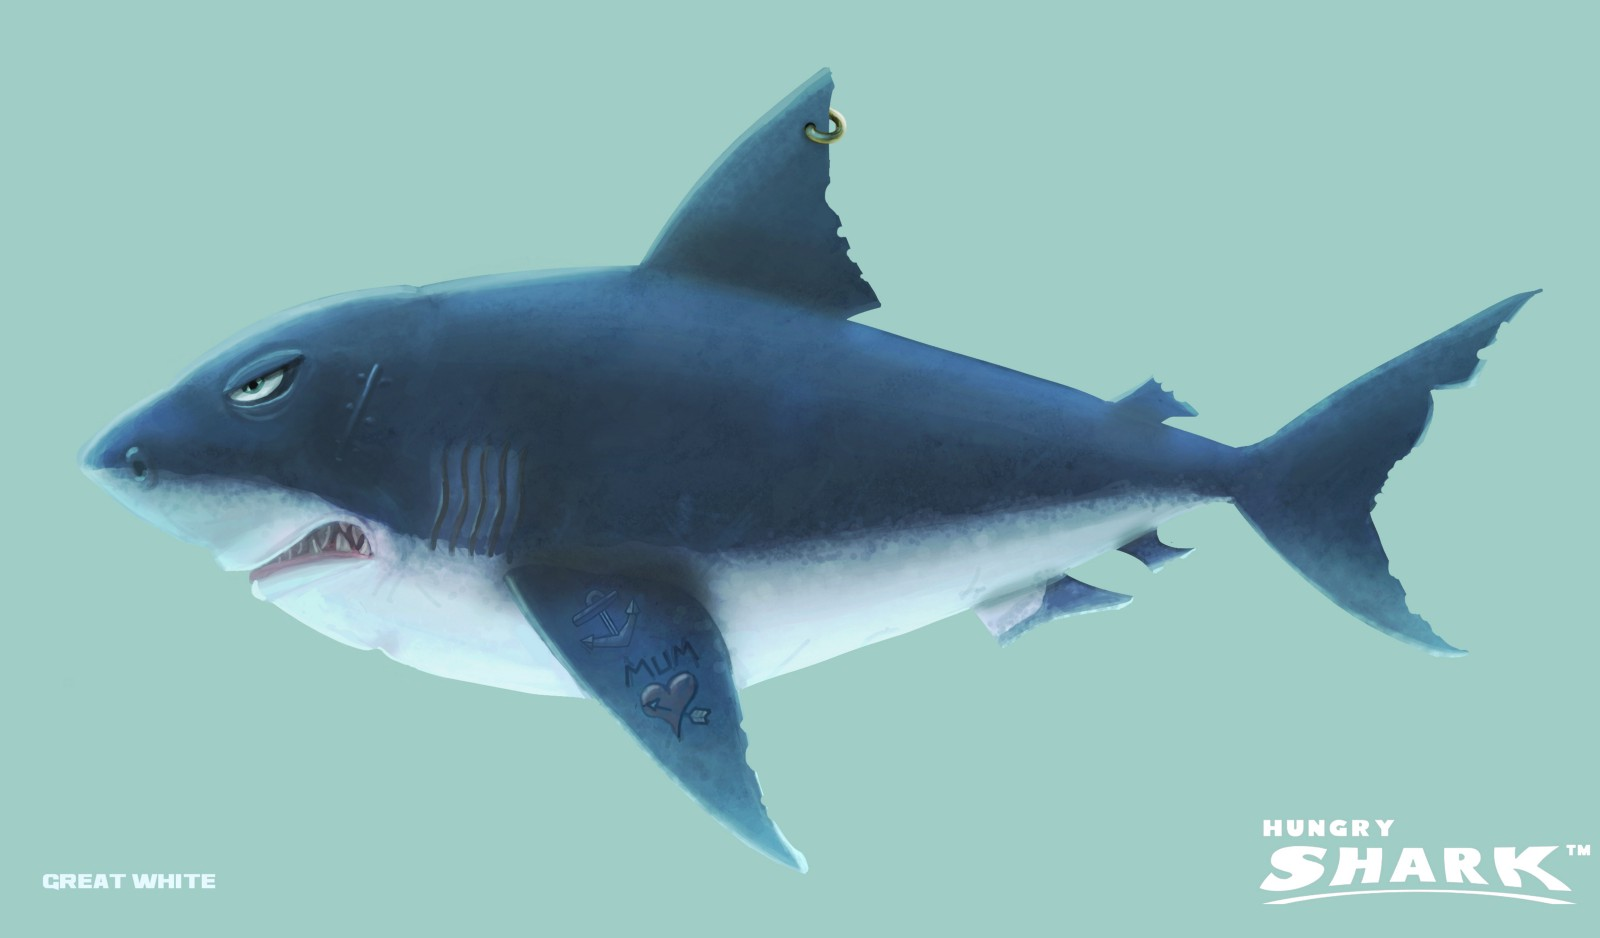 evolution of sharks Download this game from microsoft store for windows 10, windows 81, windows 10 mobile, windows phone 81, windows phone 8 see screenshots, read the latest customer reviews, and compare ratings for hungry shark evolution.